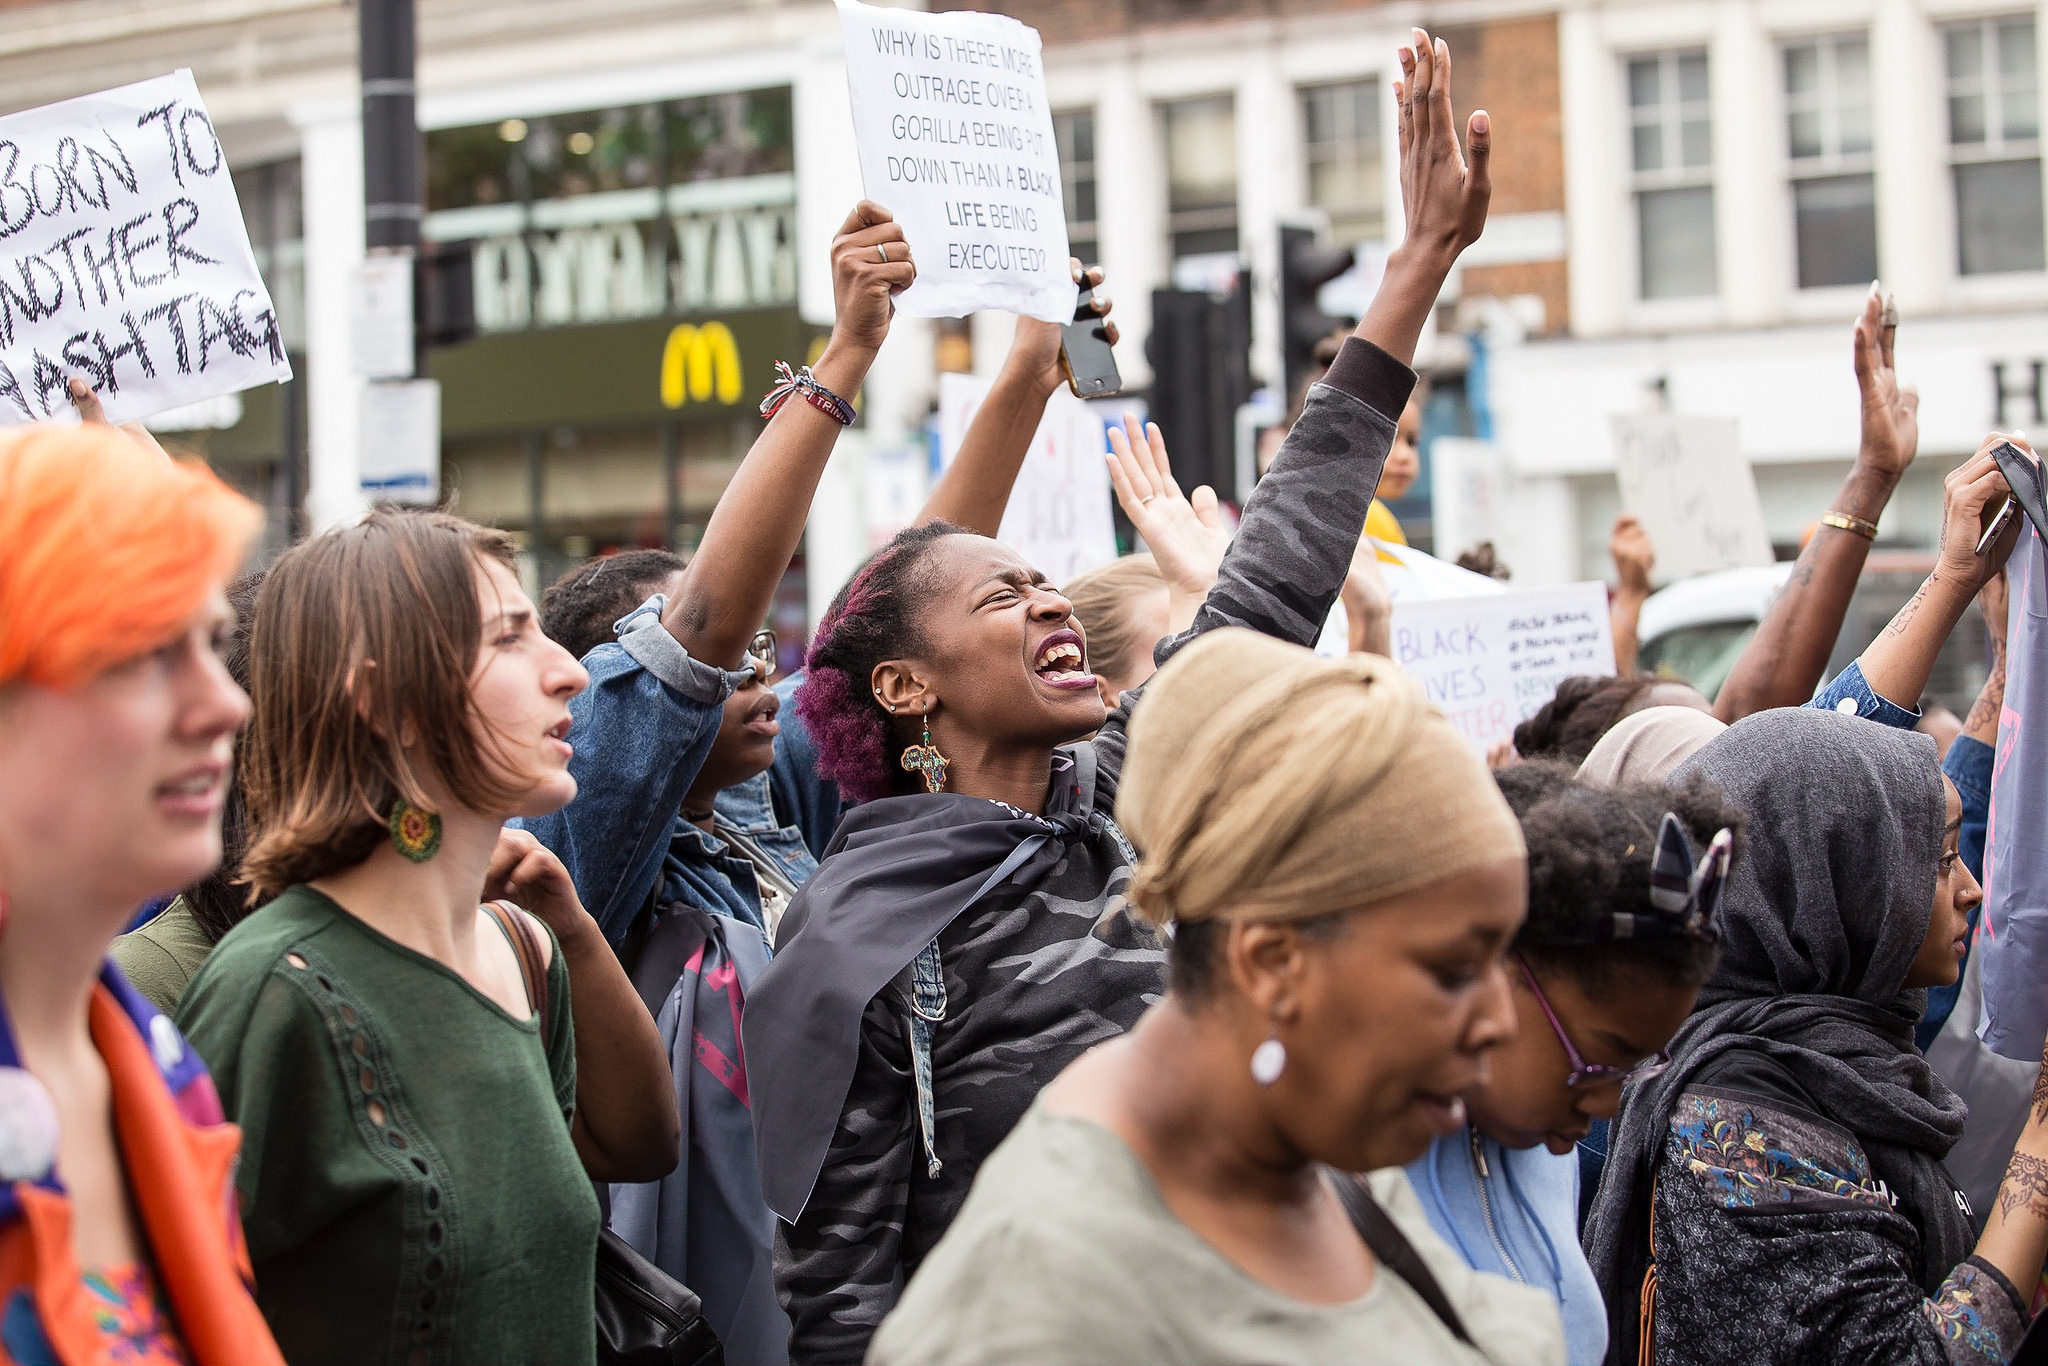 Protest Events In London